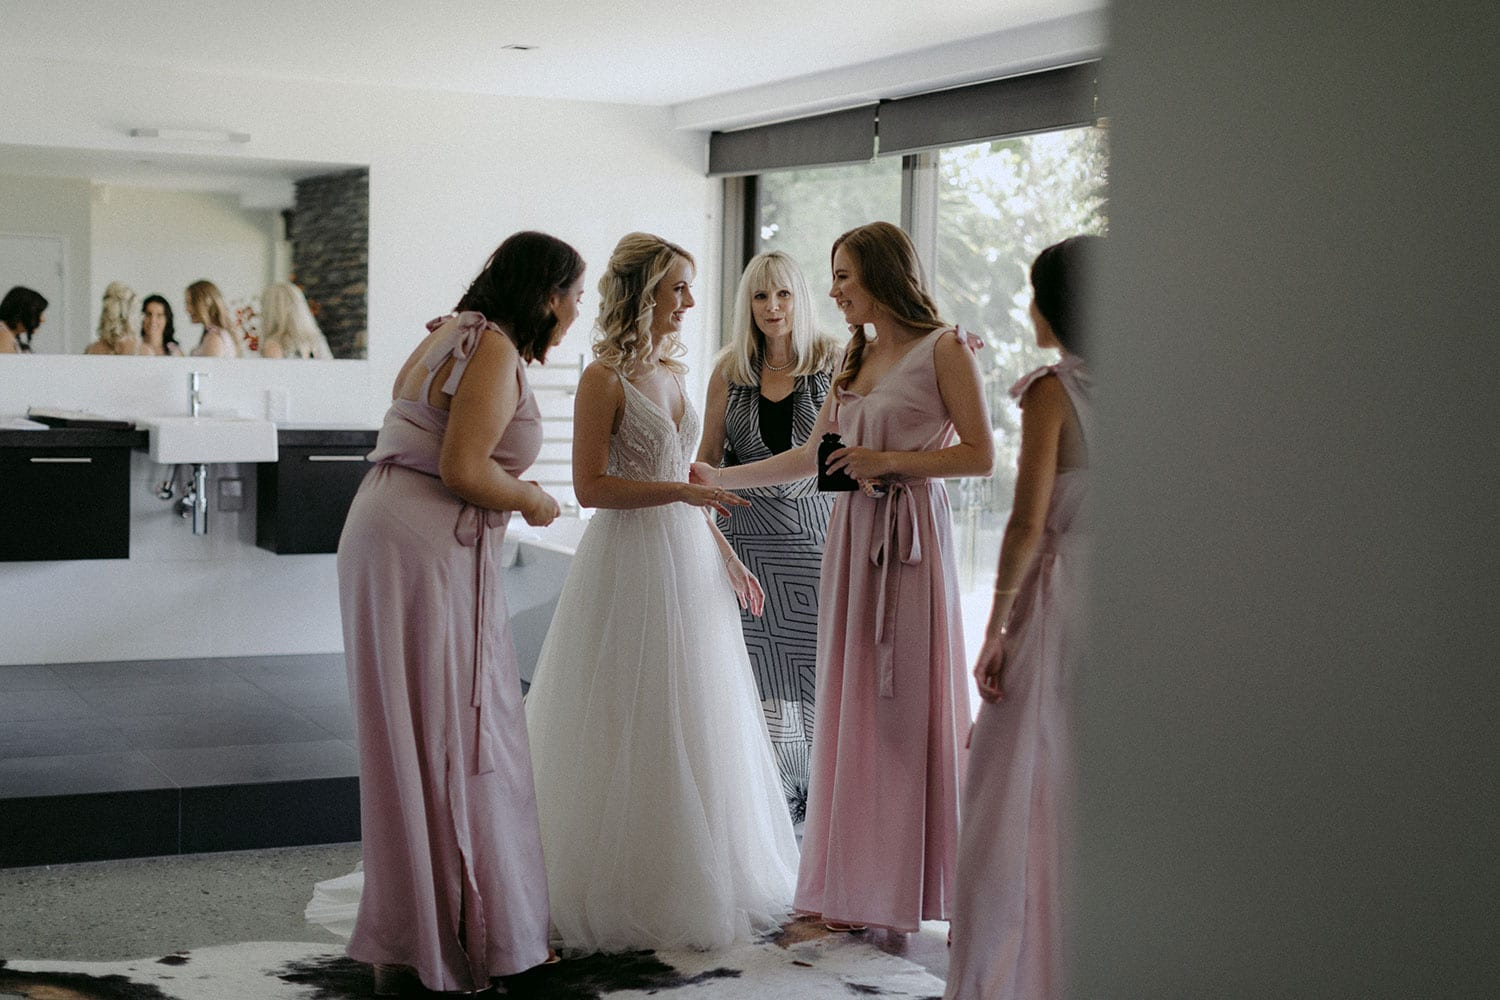 Vinka Design Features Real Weddings - bride in custom made Keiko gown from the Oriental affair collection with additional delicate dimensional flower lace added to the bodice and beading added to the skirt layers. Bride getting ready with bridesmaids